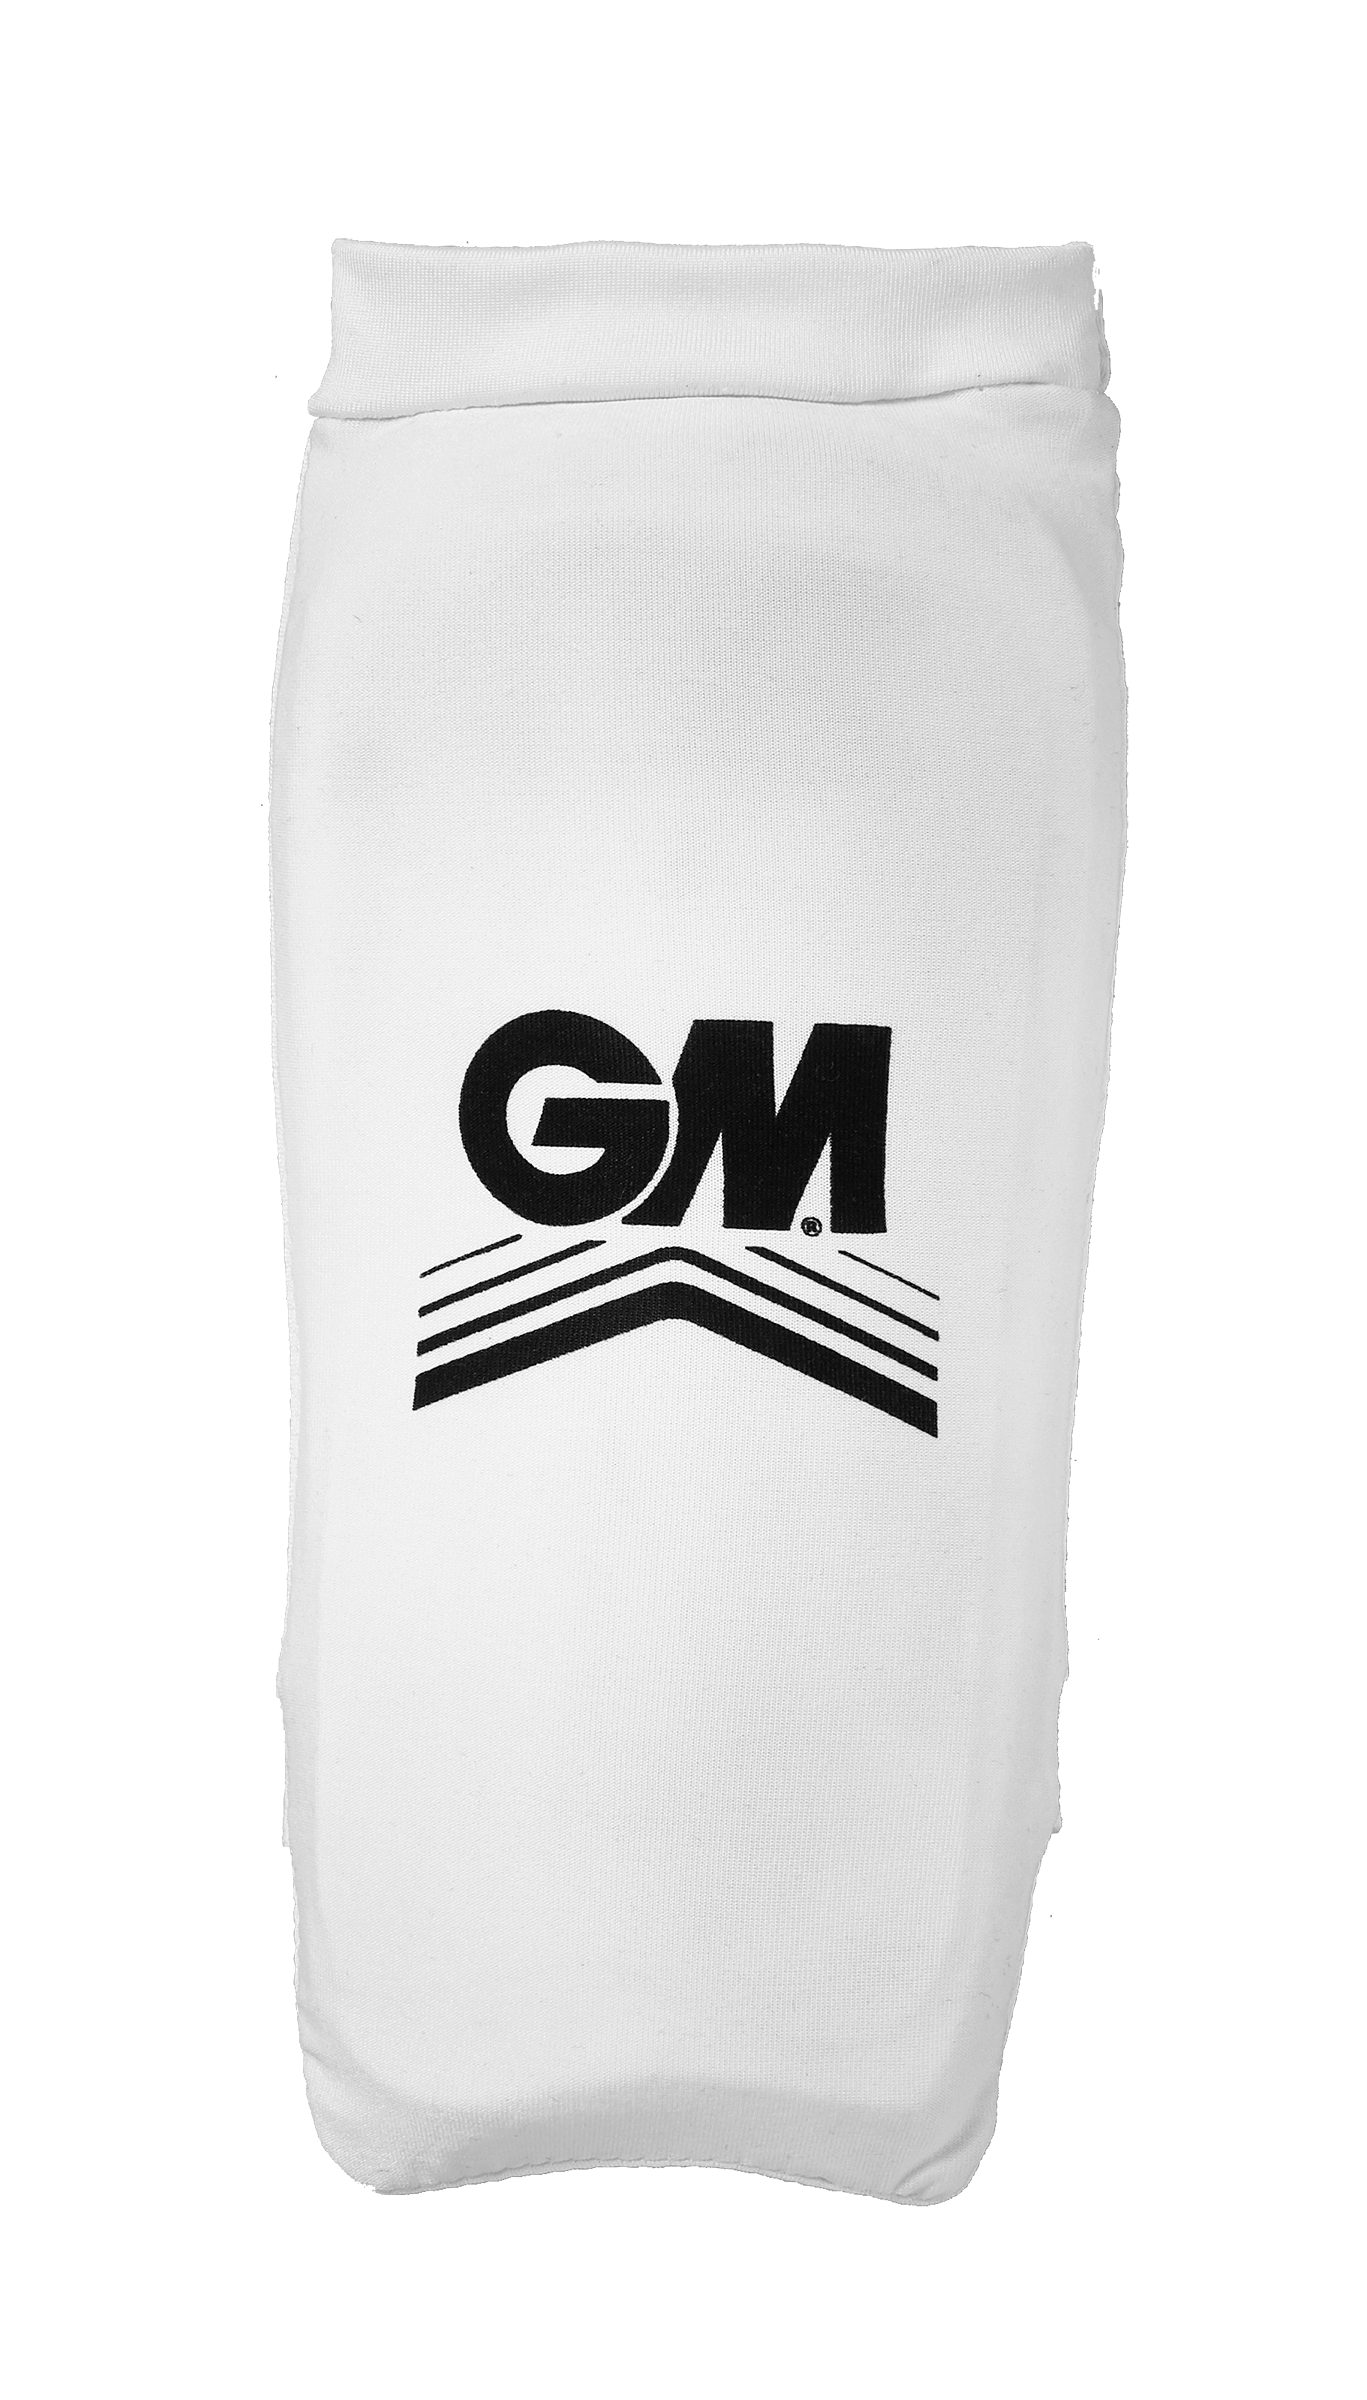 Original Limited Edition Forearm Guard